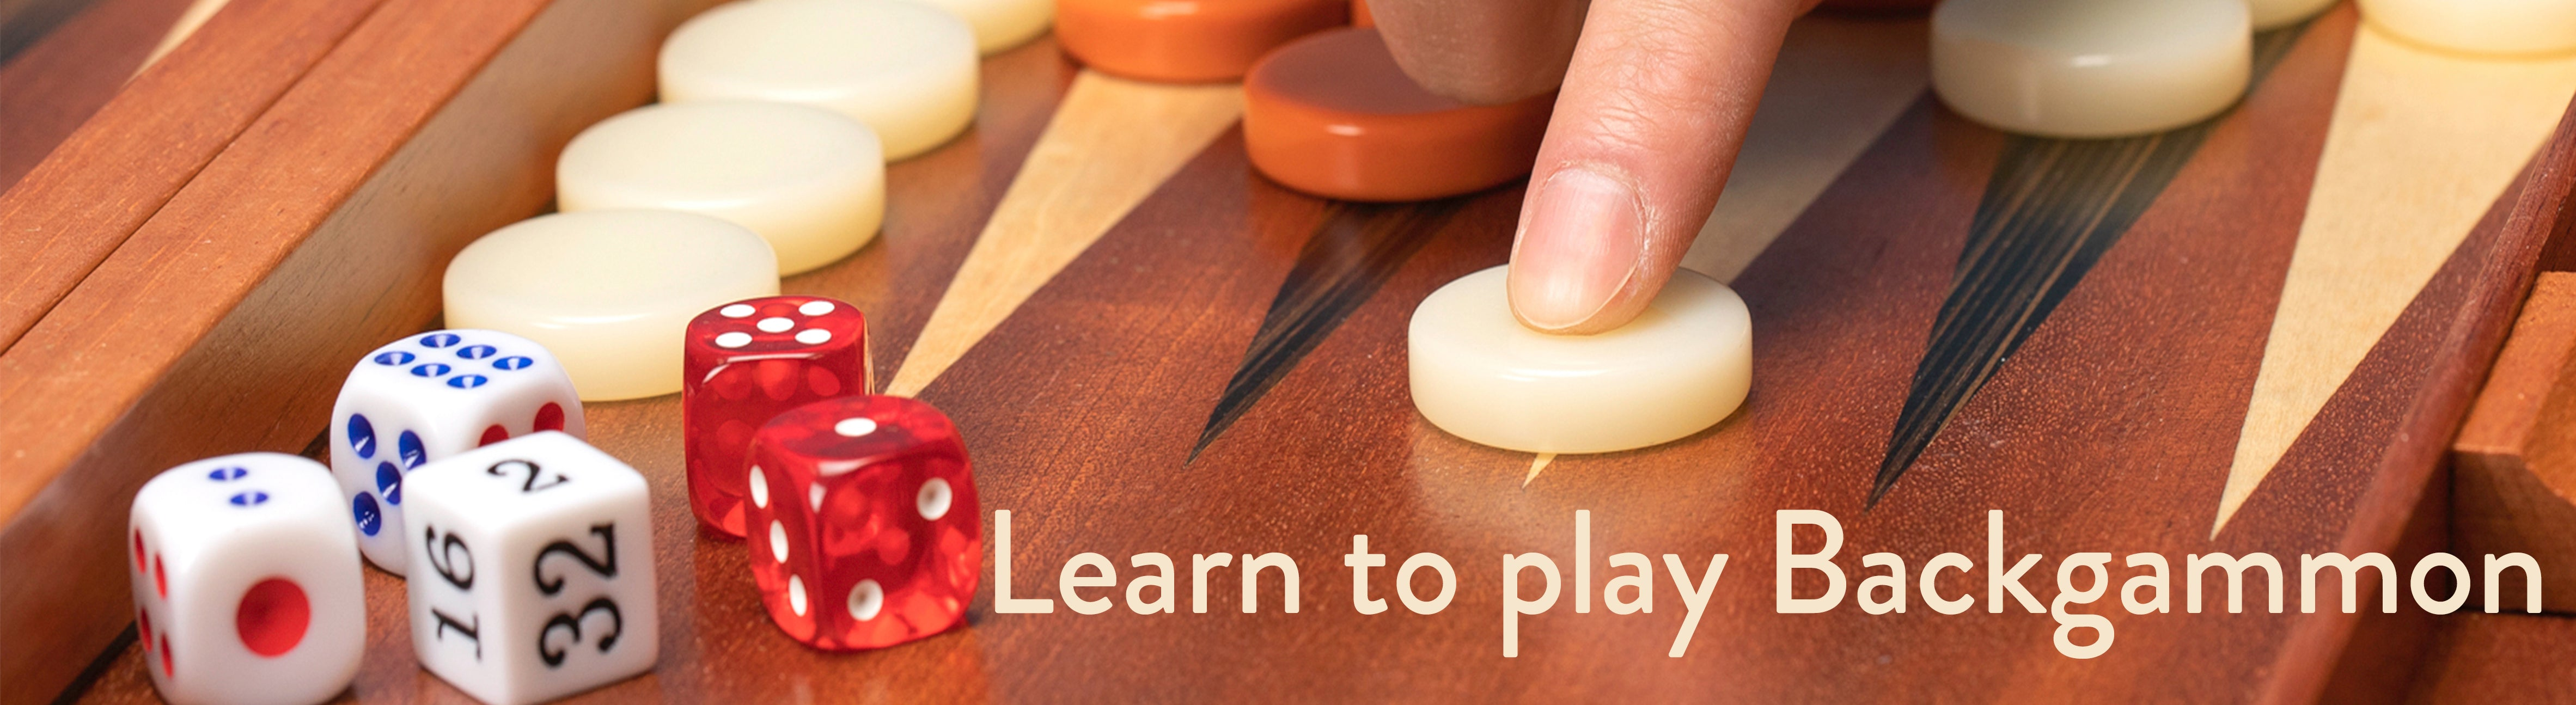 https://www.ymimports.com/pages/how-to-play-backgammon